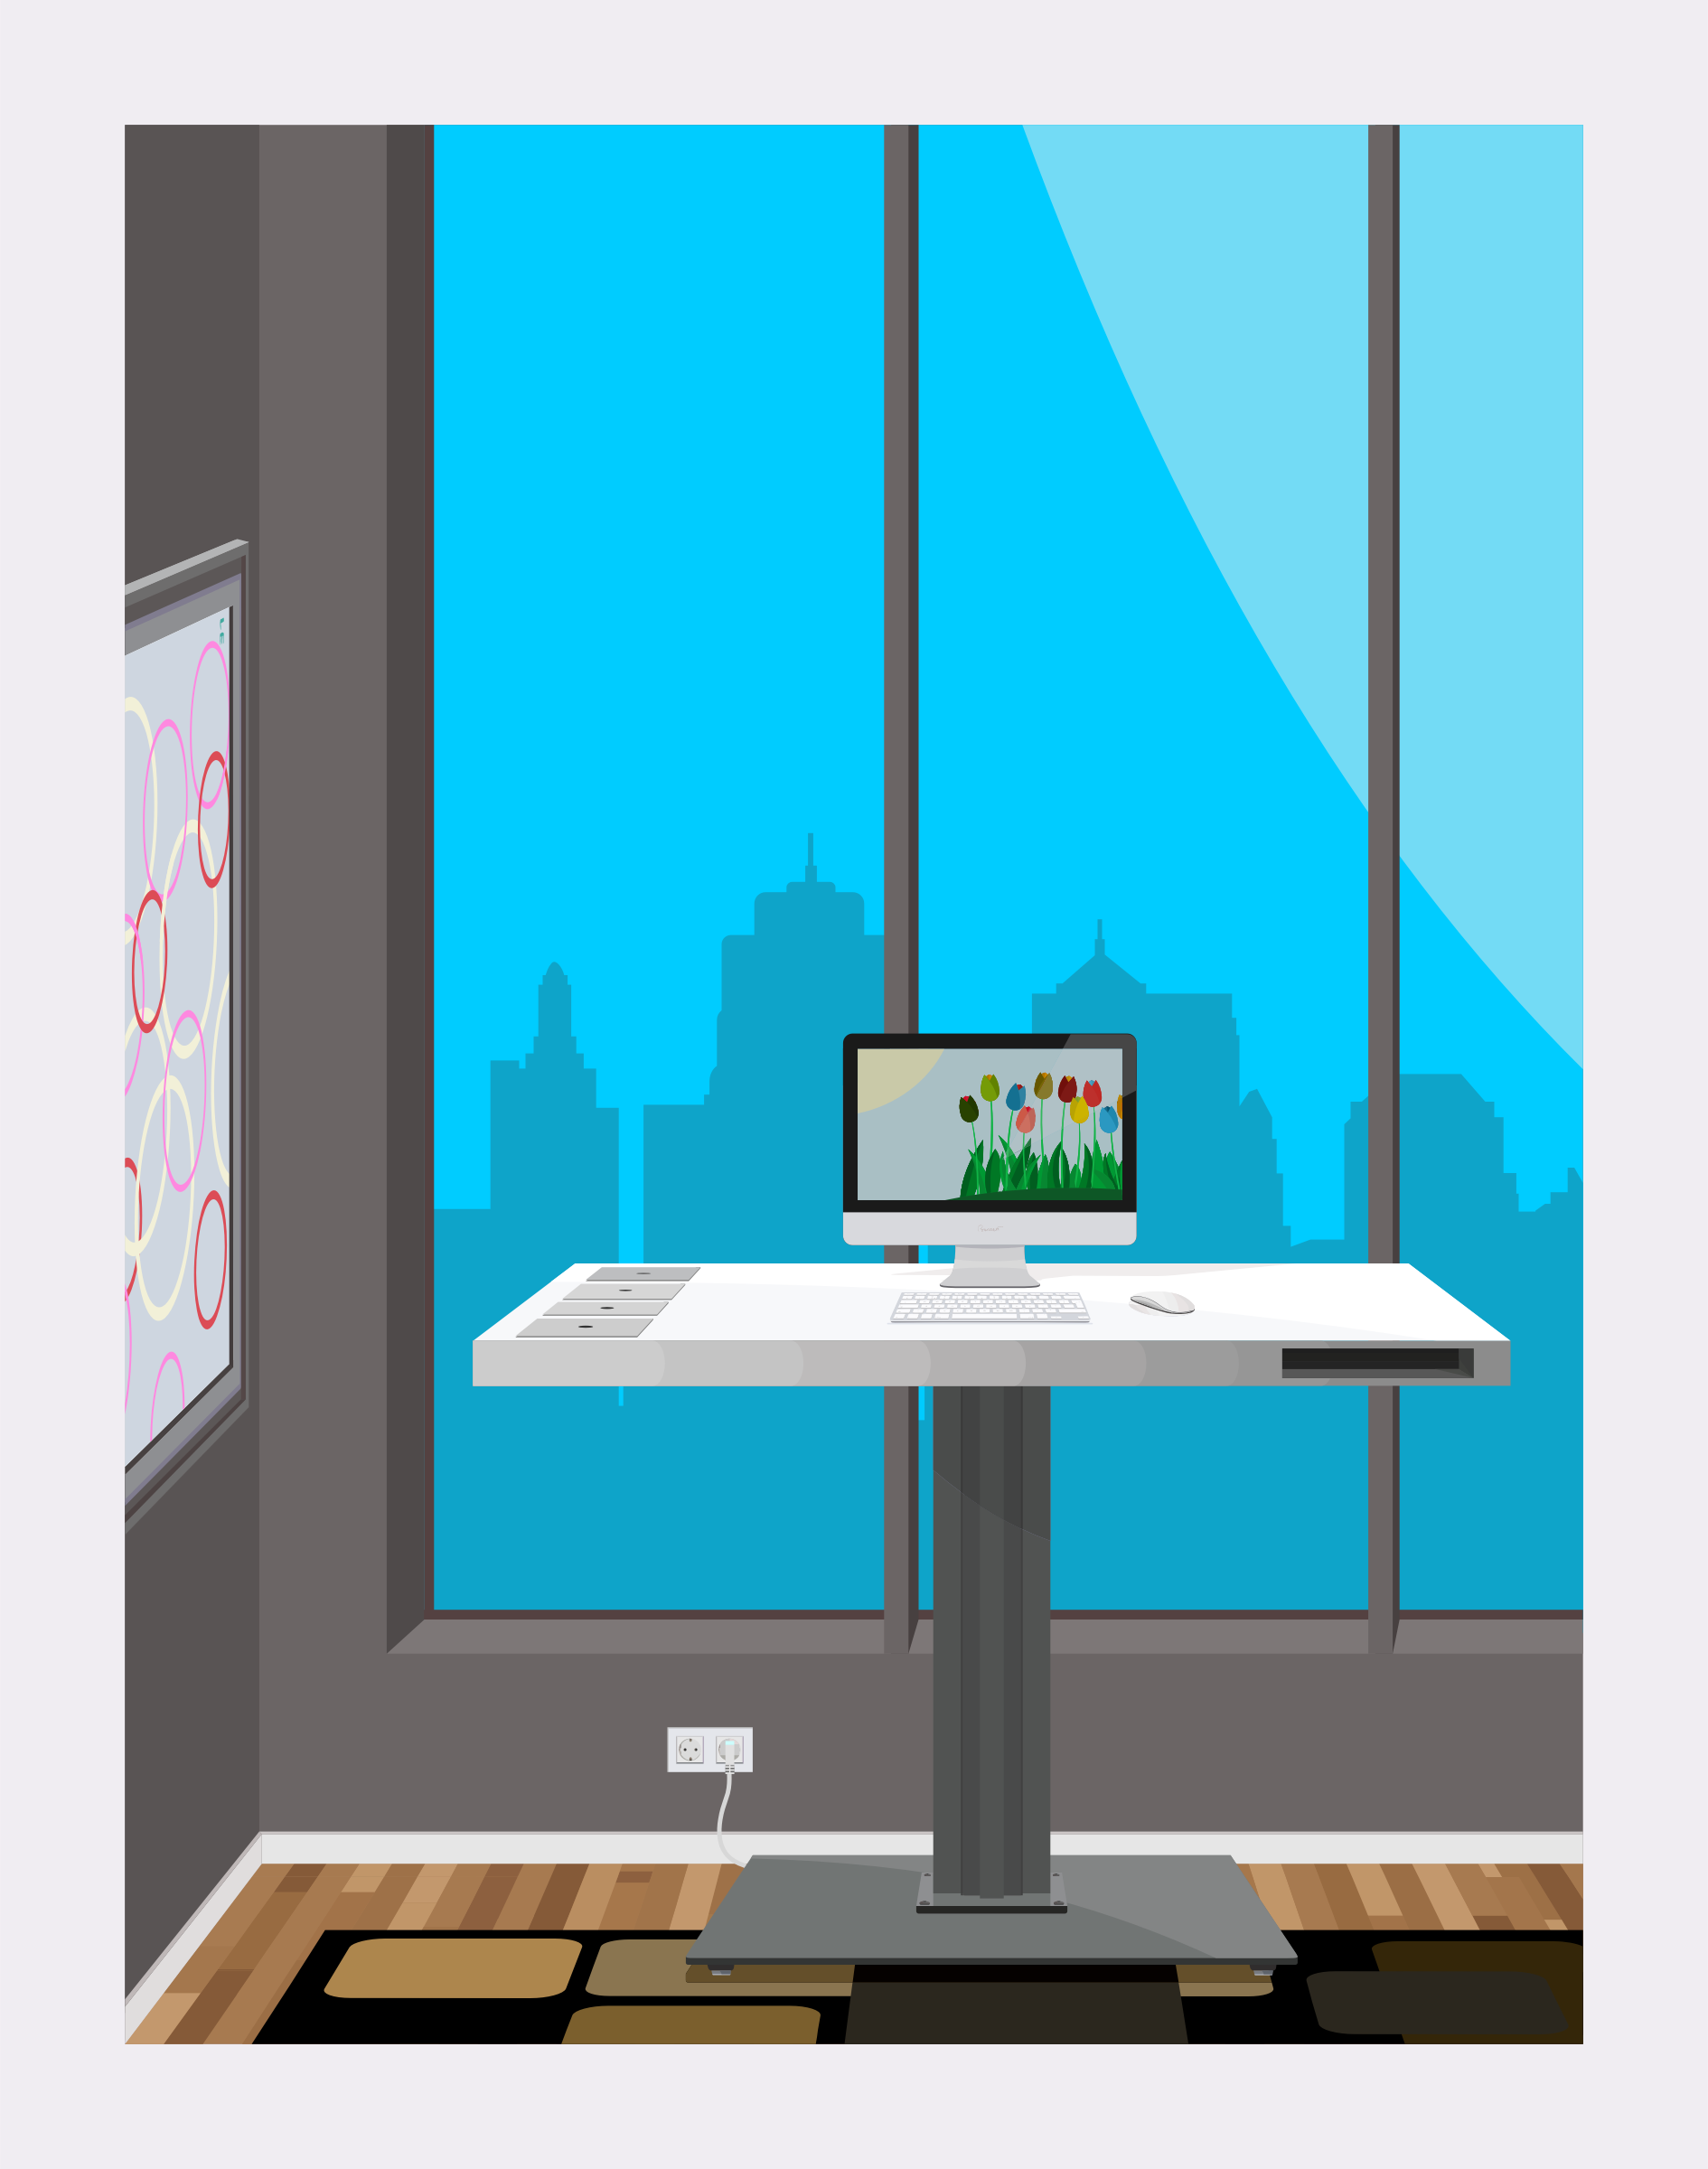 Standing Desk With City View by barrettward